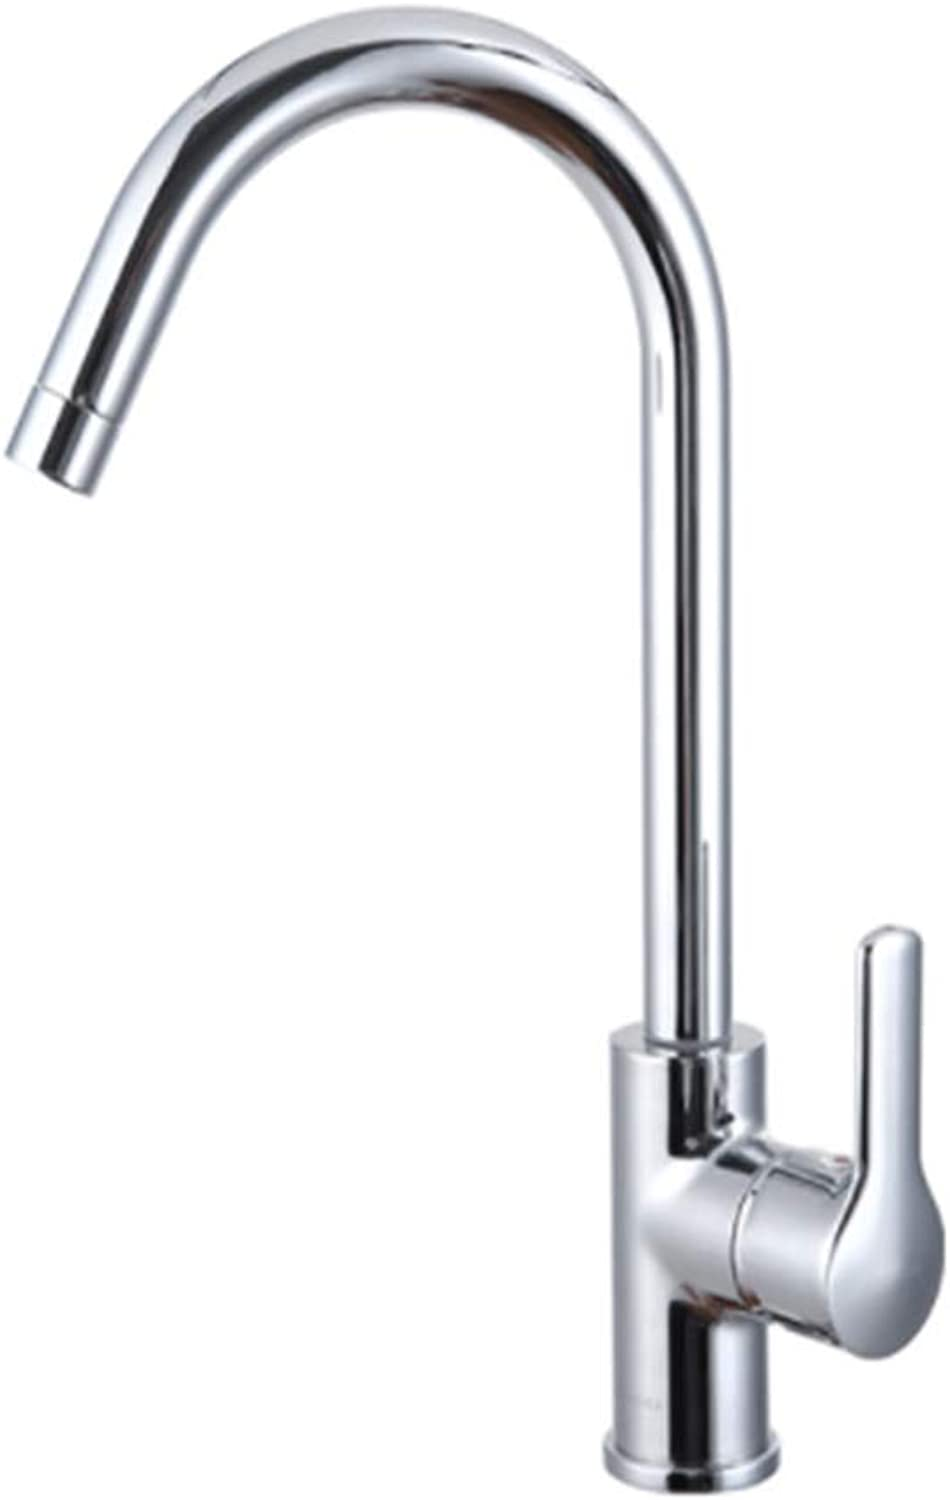 Kitchen Taps Faucet Modern Kitchen Sink Taps Stainless Steelkitchen Faucet Single Hole Faucet Sink Hot and Cold Ceramic Disc Valve Core Faucet redatable Double Tank Vegetable Washer Faucet